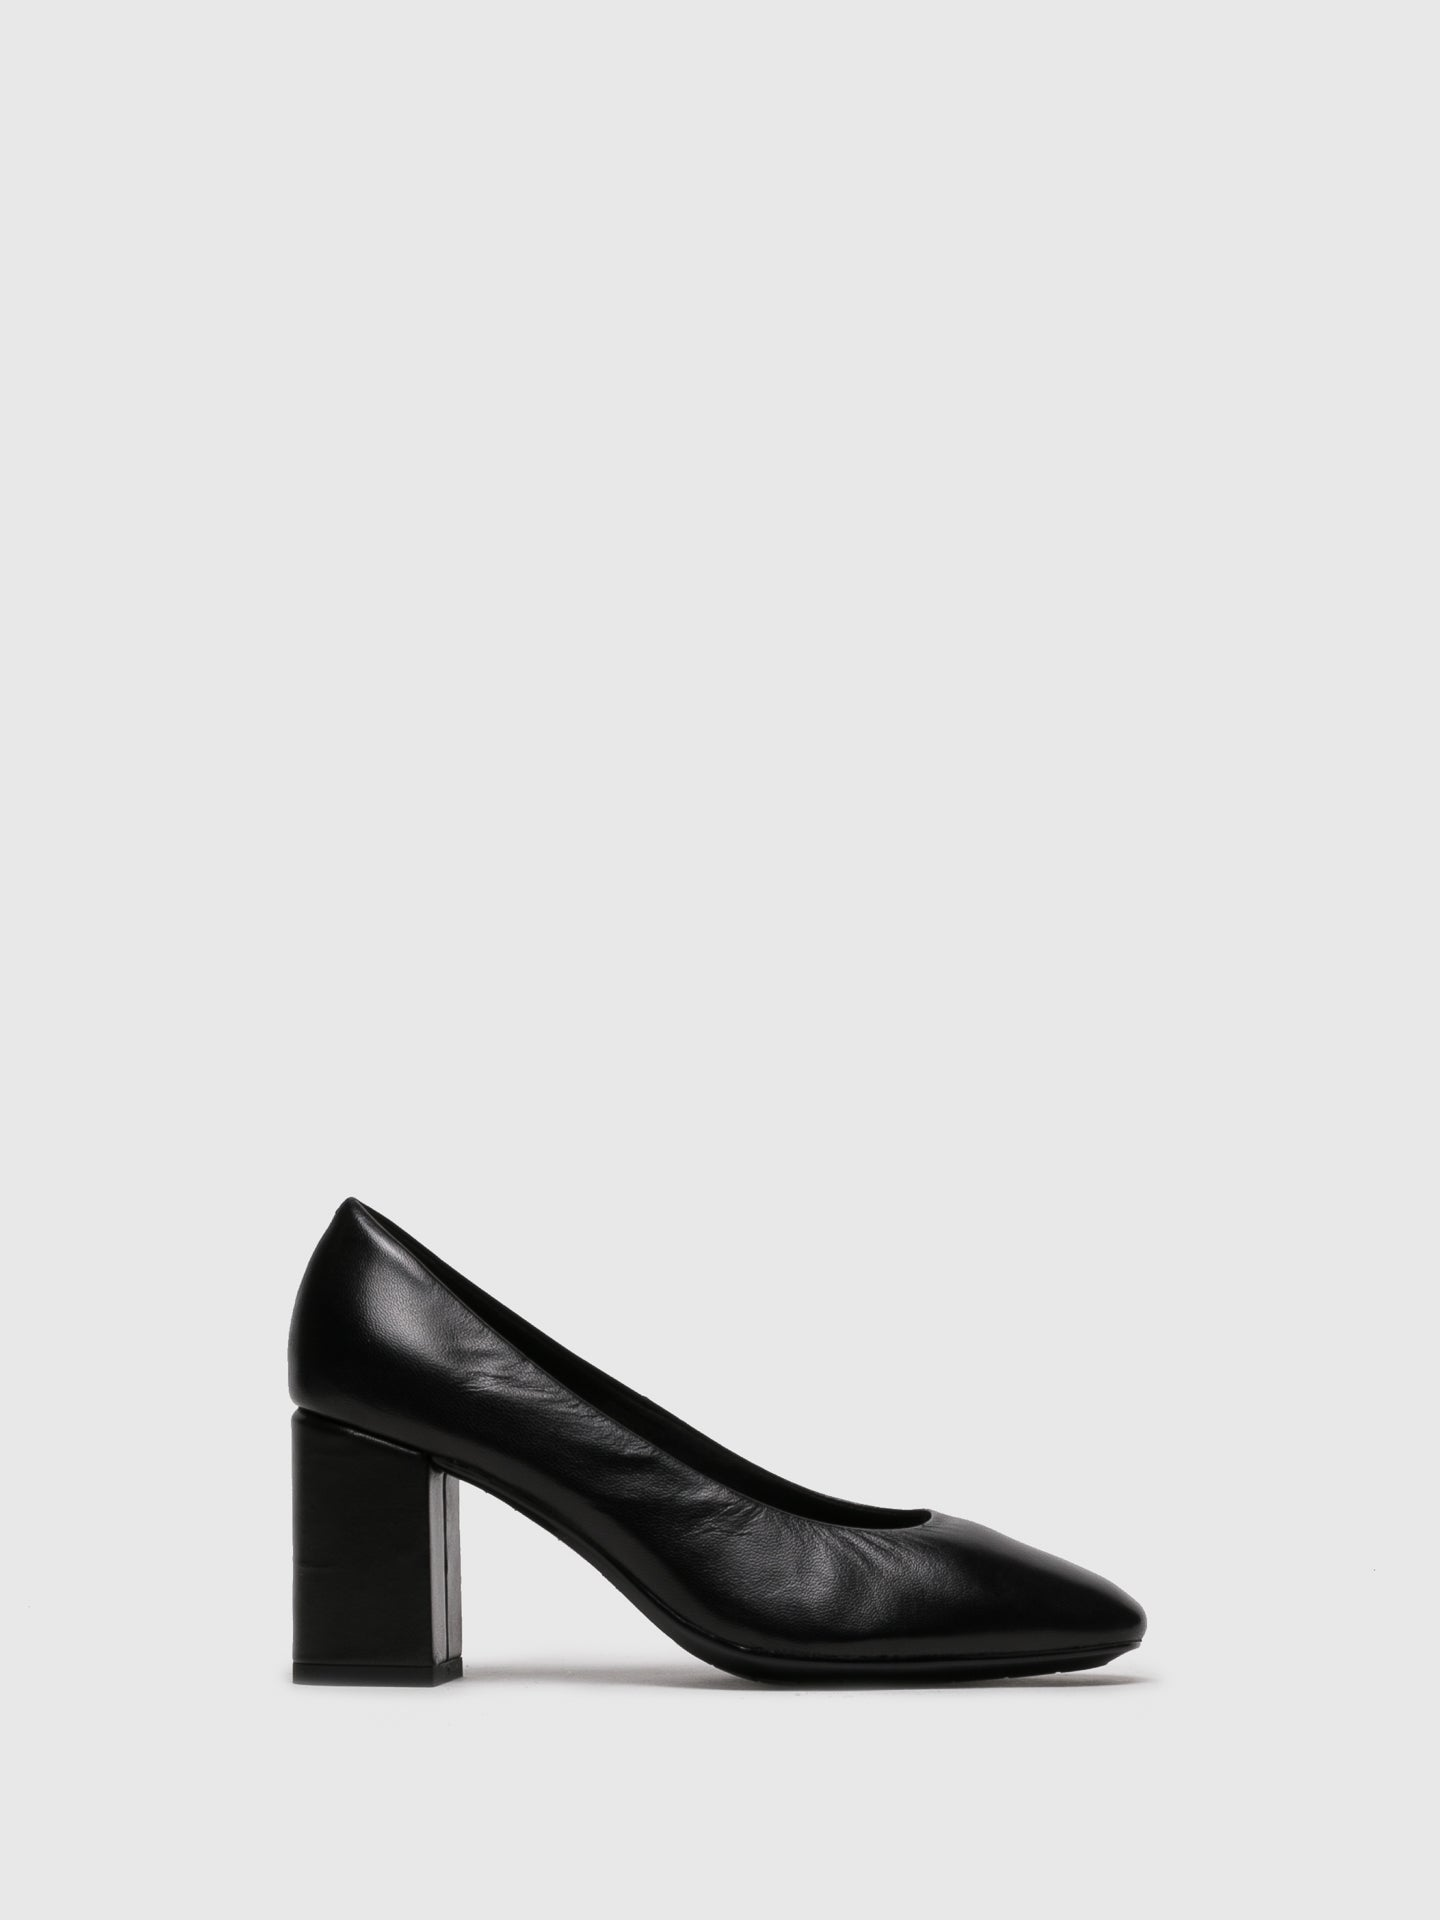 The Flexx Black Classic Pumps